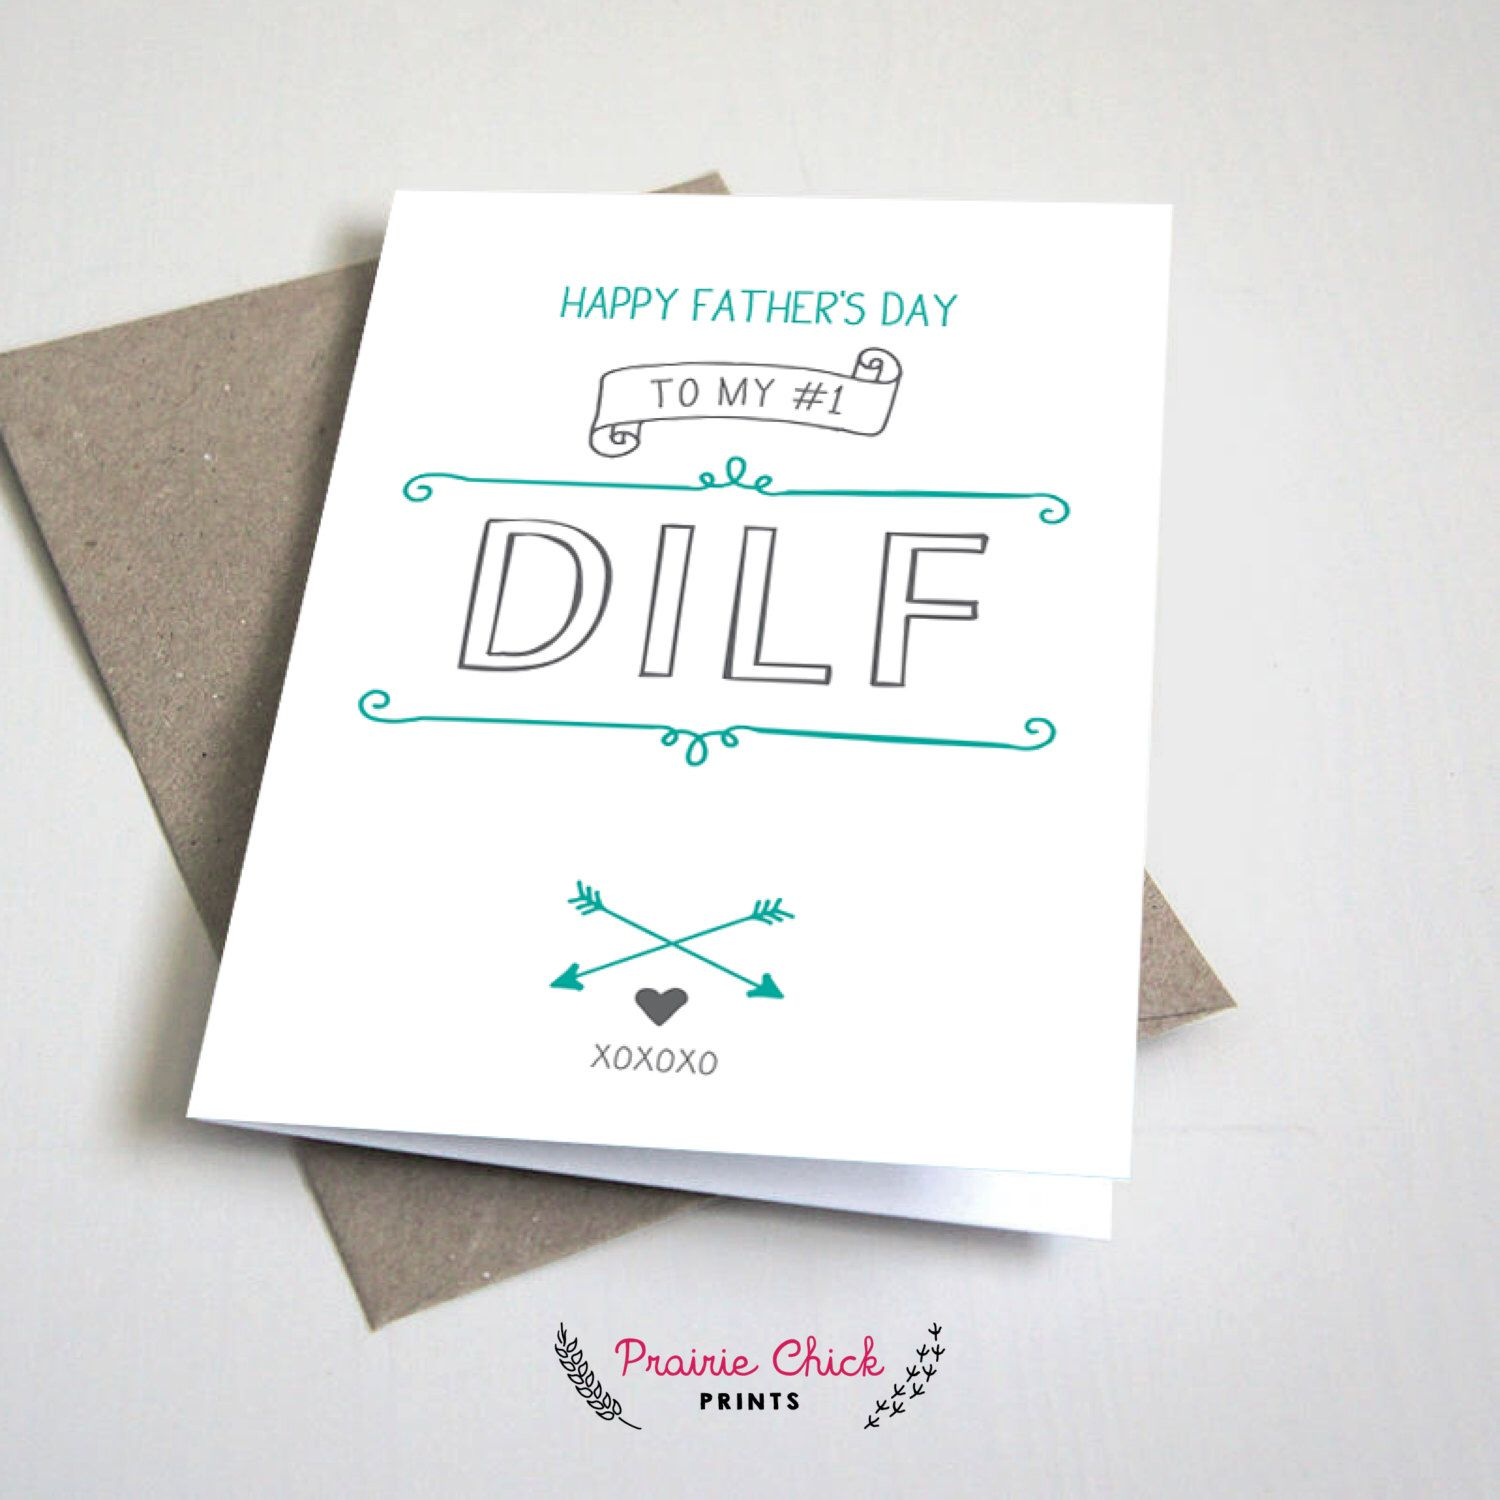 Happy Fathers Day To My 1 DILF Greeting CARD Fathers Day Card – Printable Father Birthday Cards